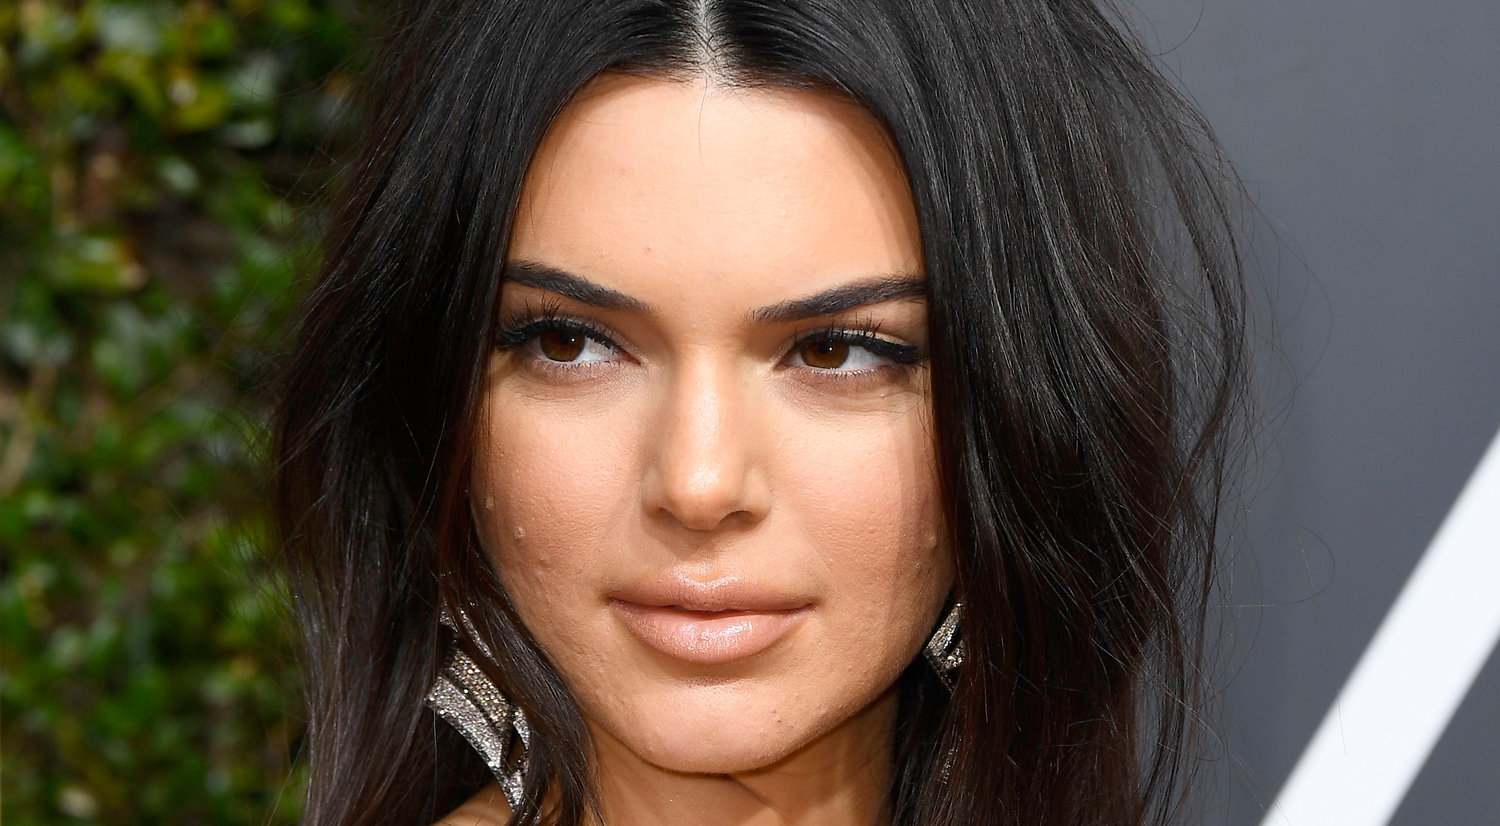 Forum on this topic: Angelina Jolie, Kendall Jenner, and Kim Kardashian , angelina-jolie-kendall-jenner-and-kim-kardashian/